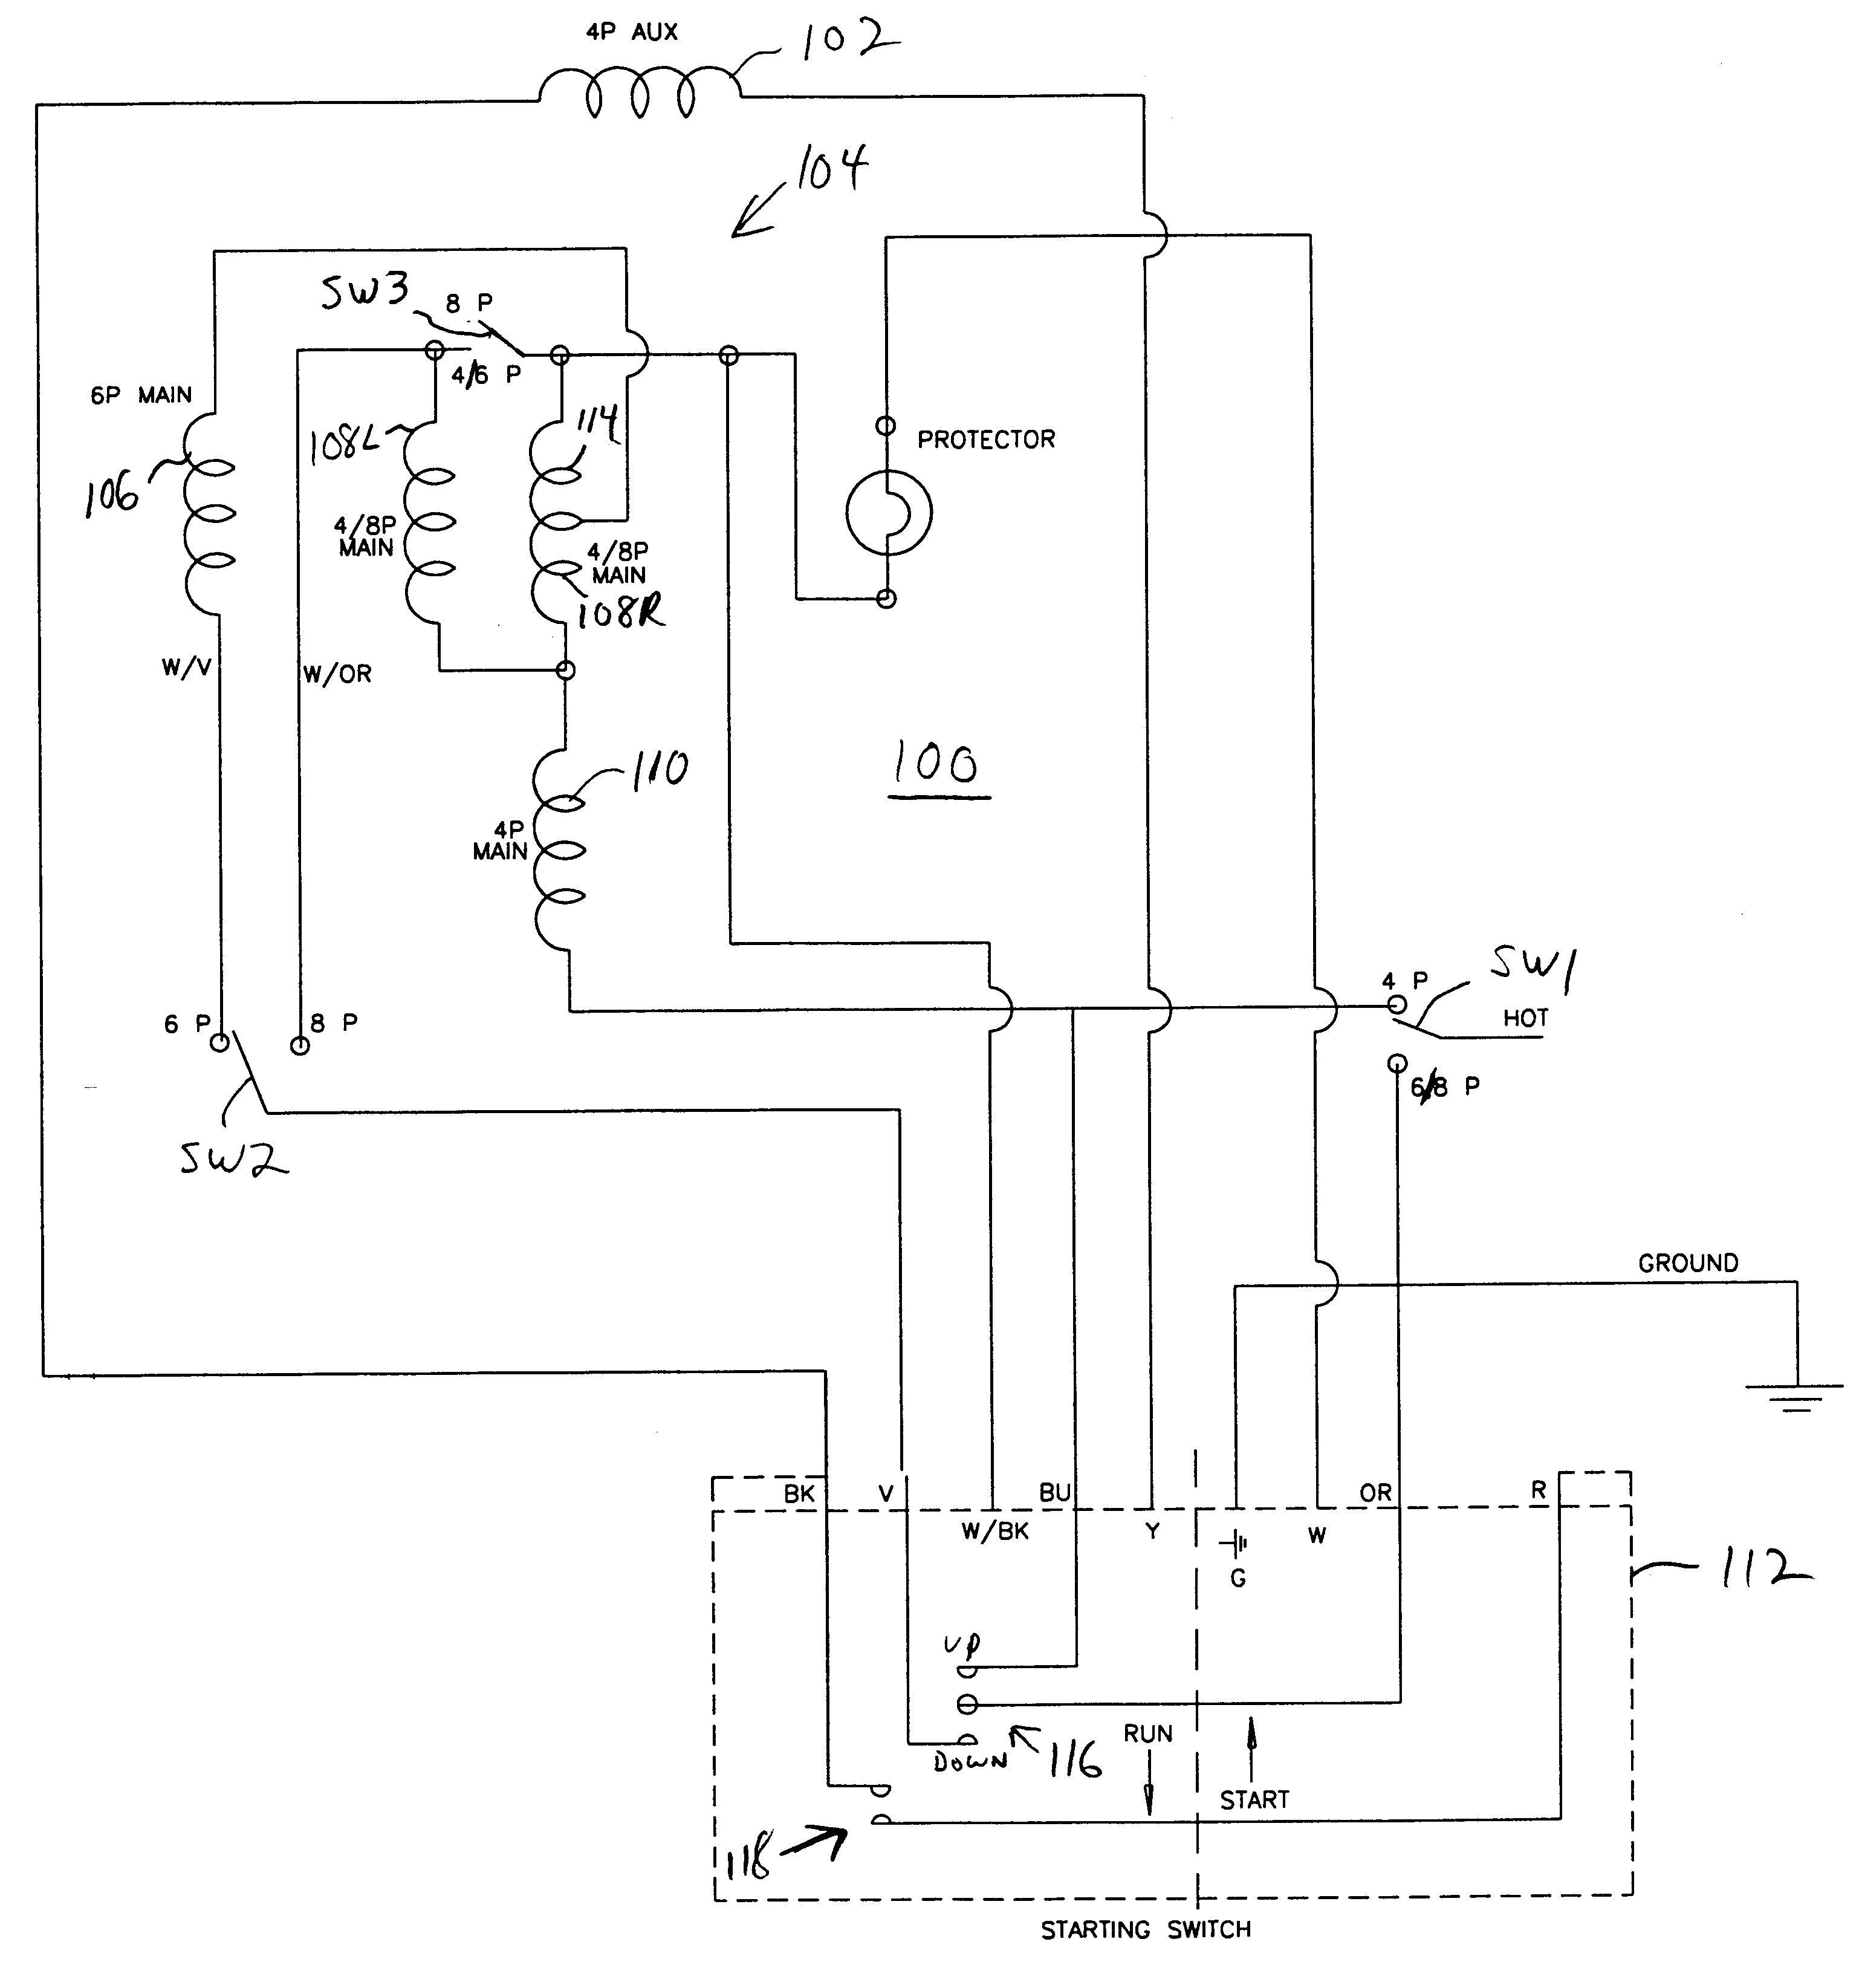 Single Phase Motor Wiring Diagram Pdf In 2020 Diagram Capacitors Electrical Circuit Diagram